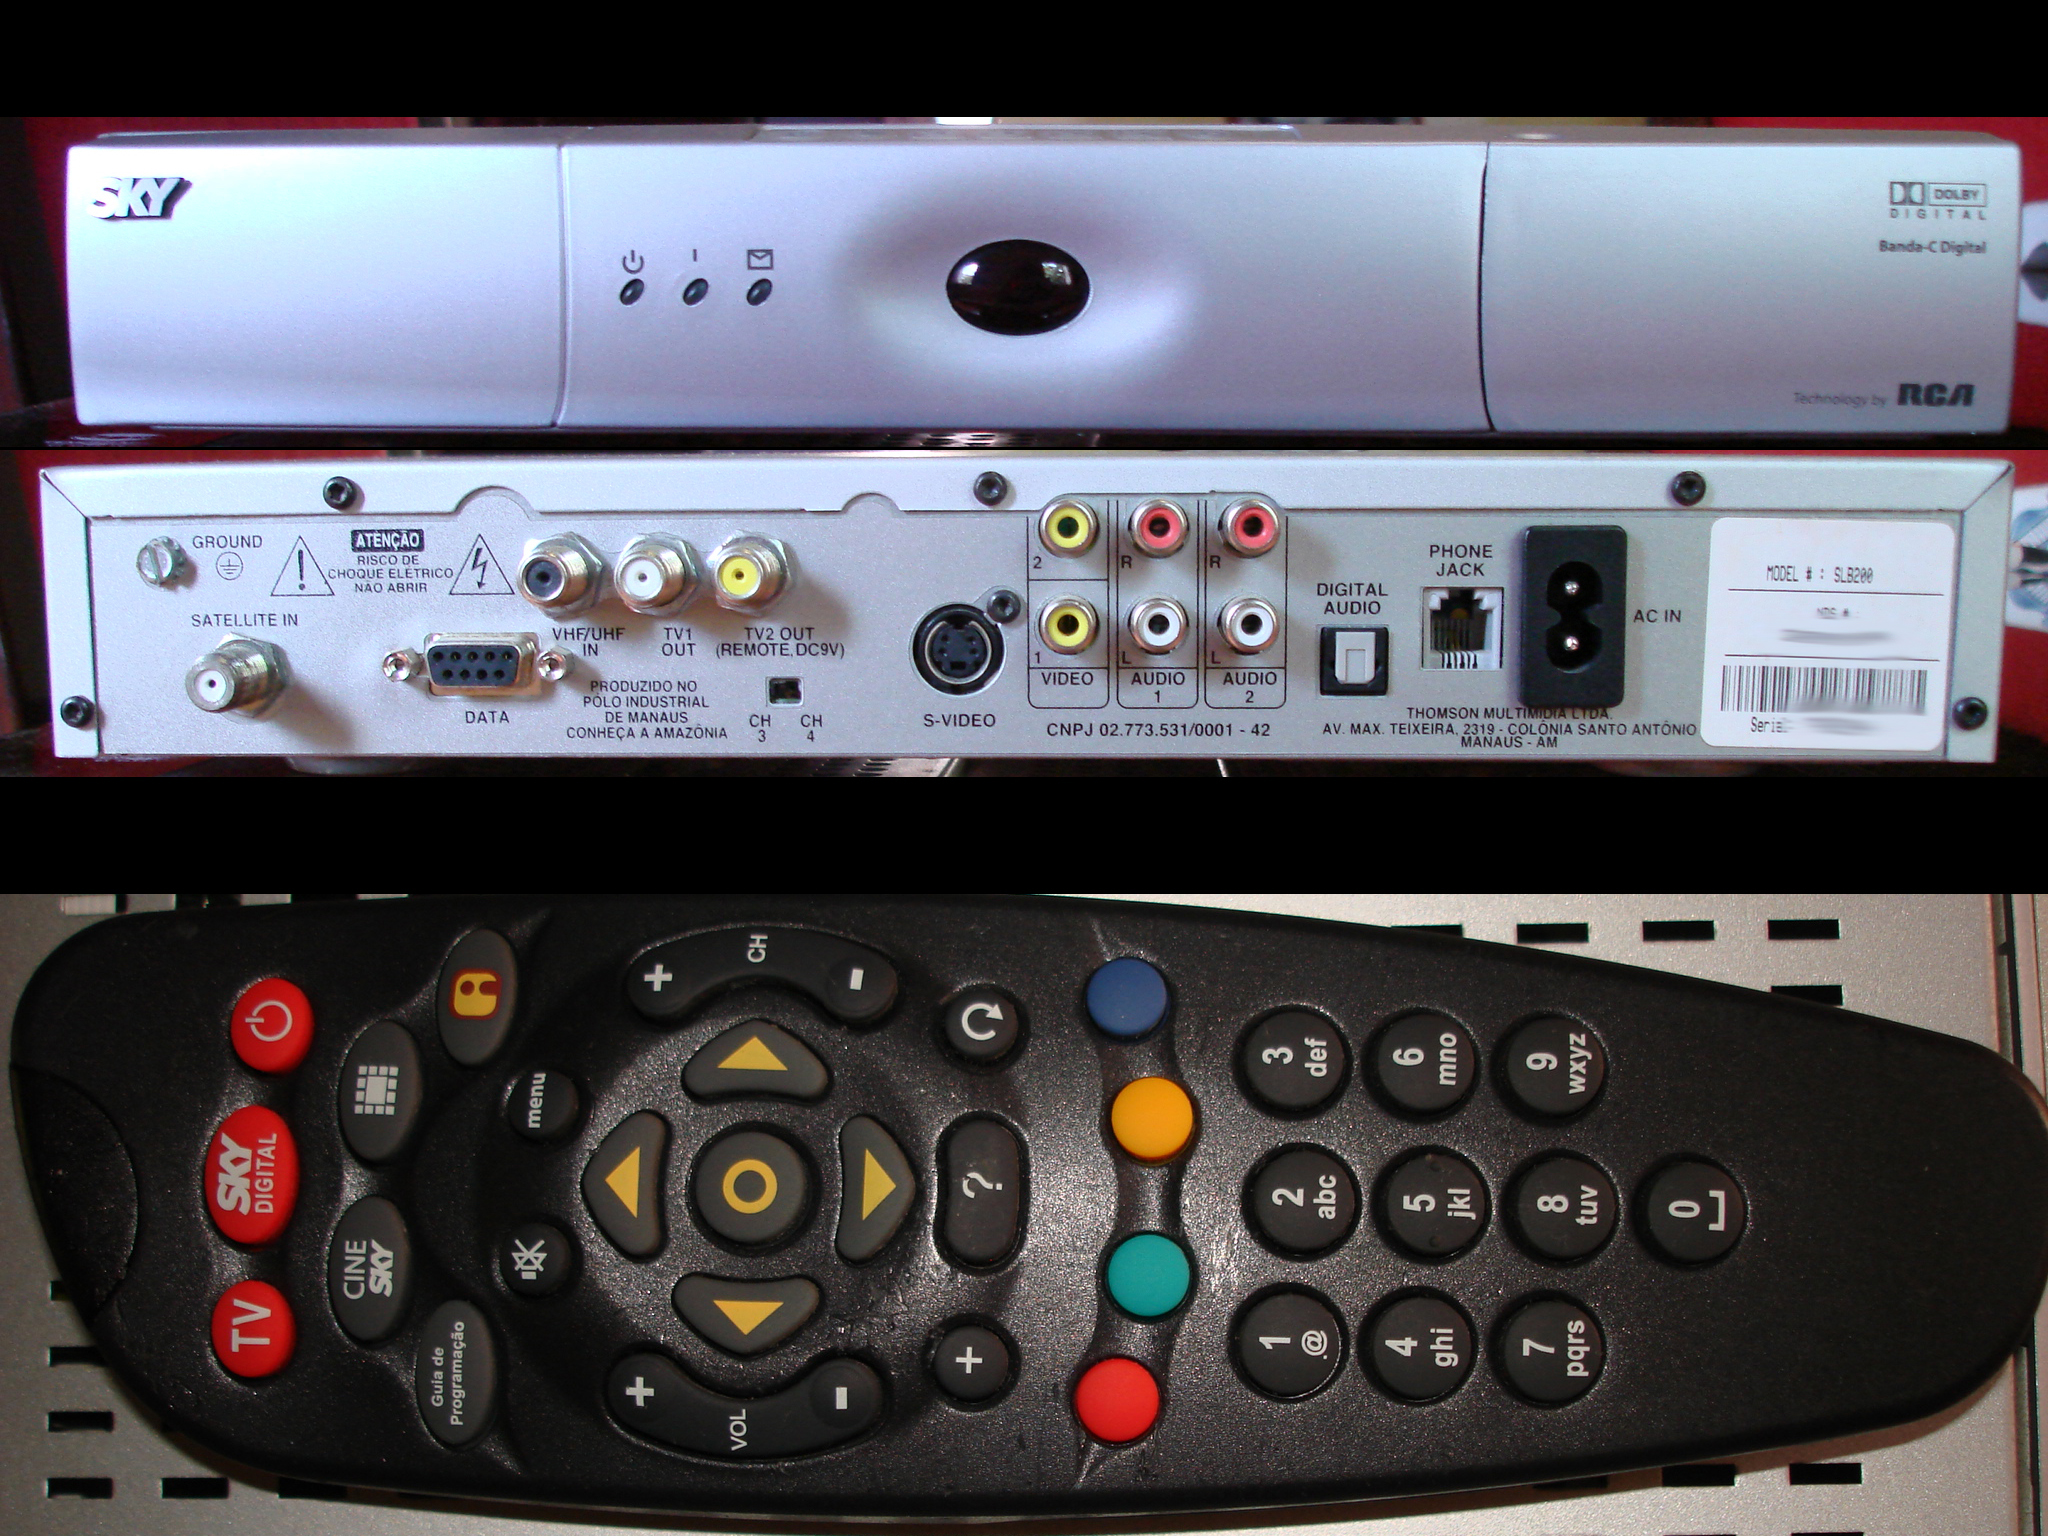 ... DIGITAL SLB200 (RCA, THOMSON com banda C digital – SKY Brasil